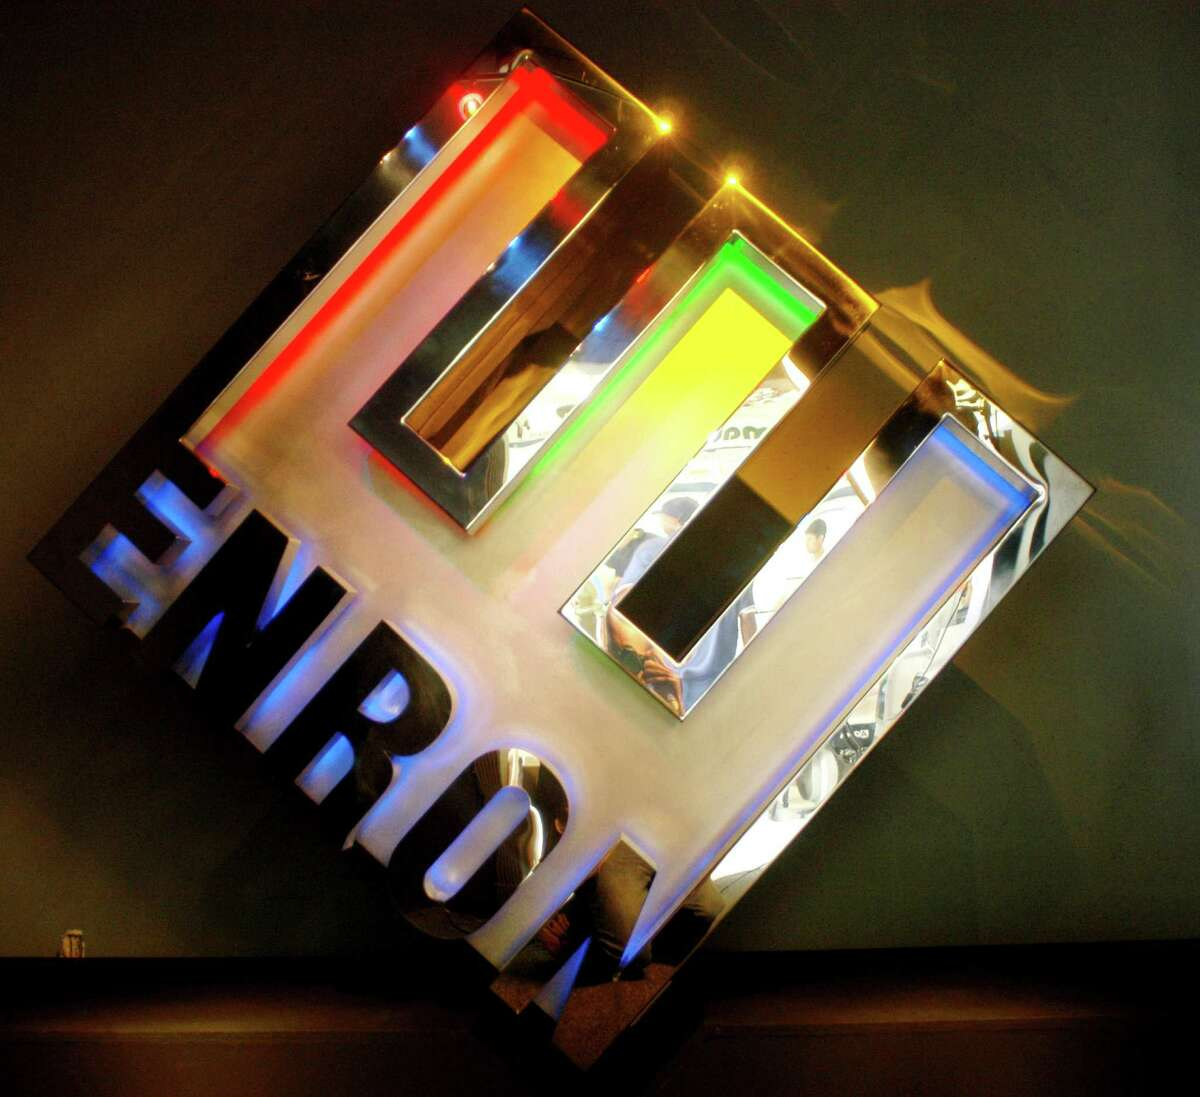 PHOTOS: The Enron Scandal In total, 32 people and one firm had charges brought before federal courts stemming from the energy giant's fallout. >>See what happened to some of the biggest players in the Enron scandal.